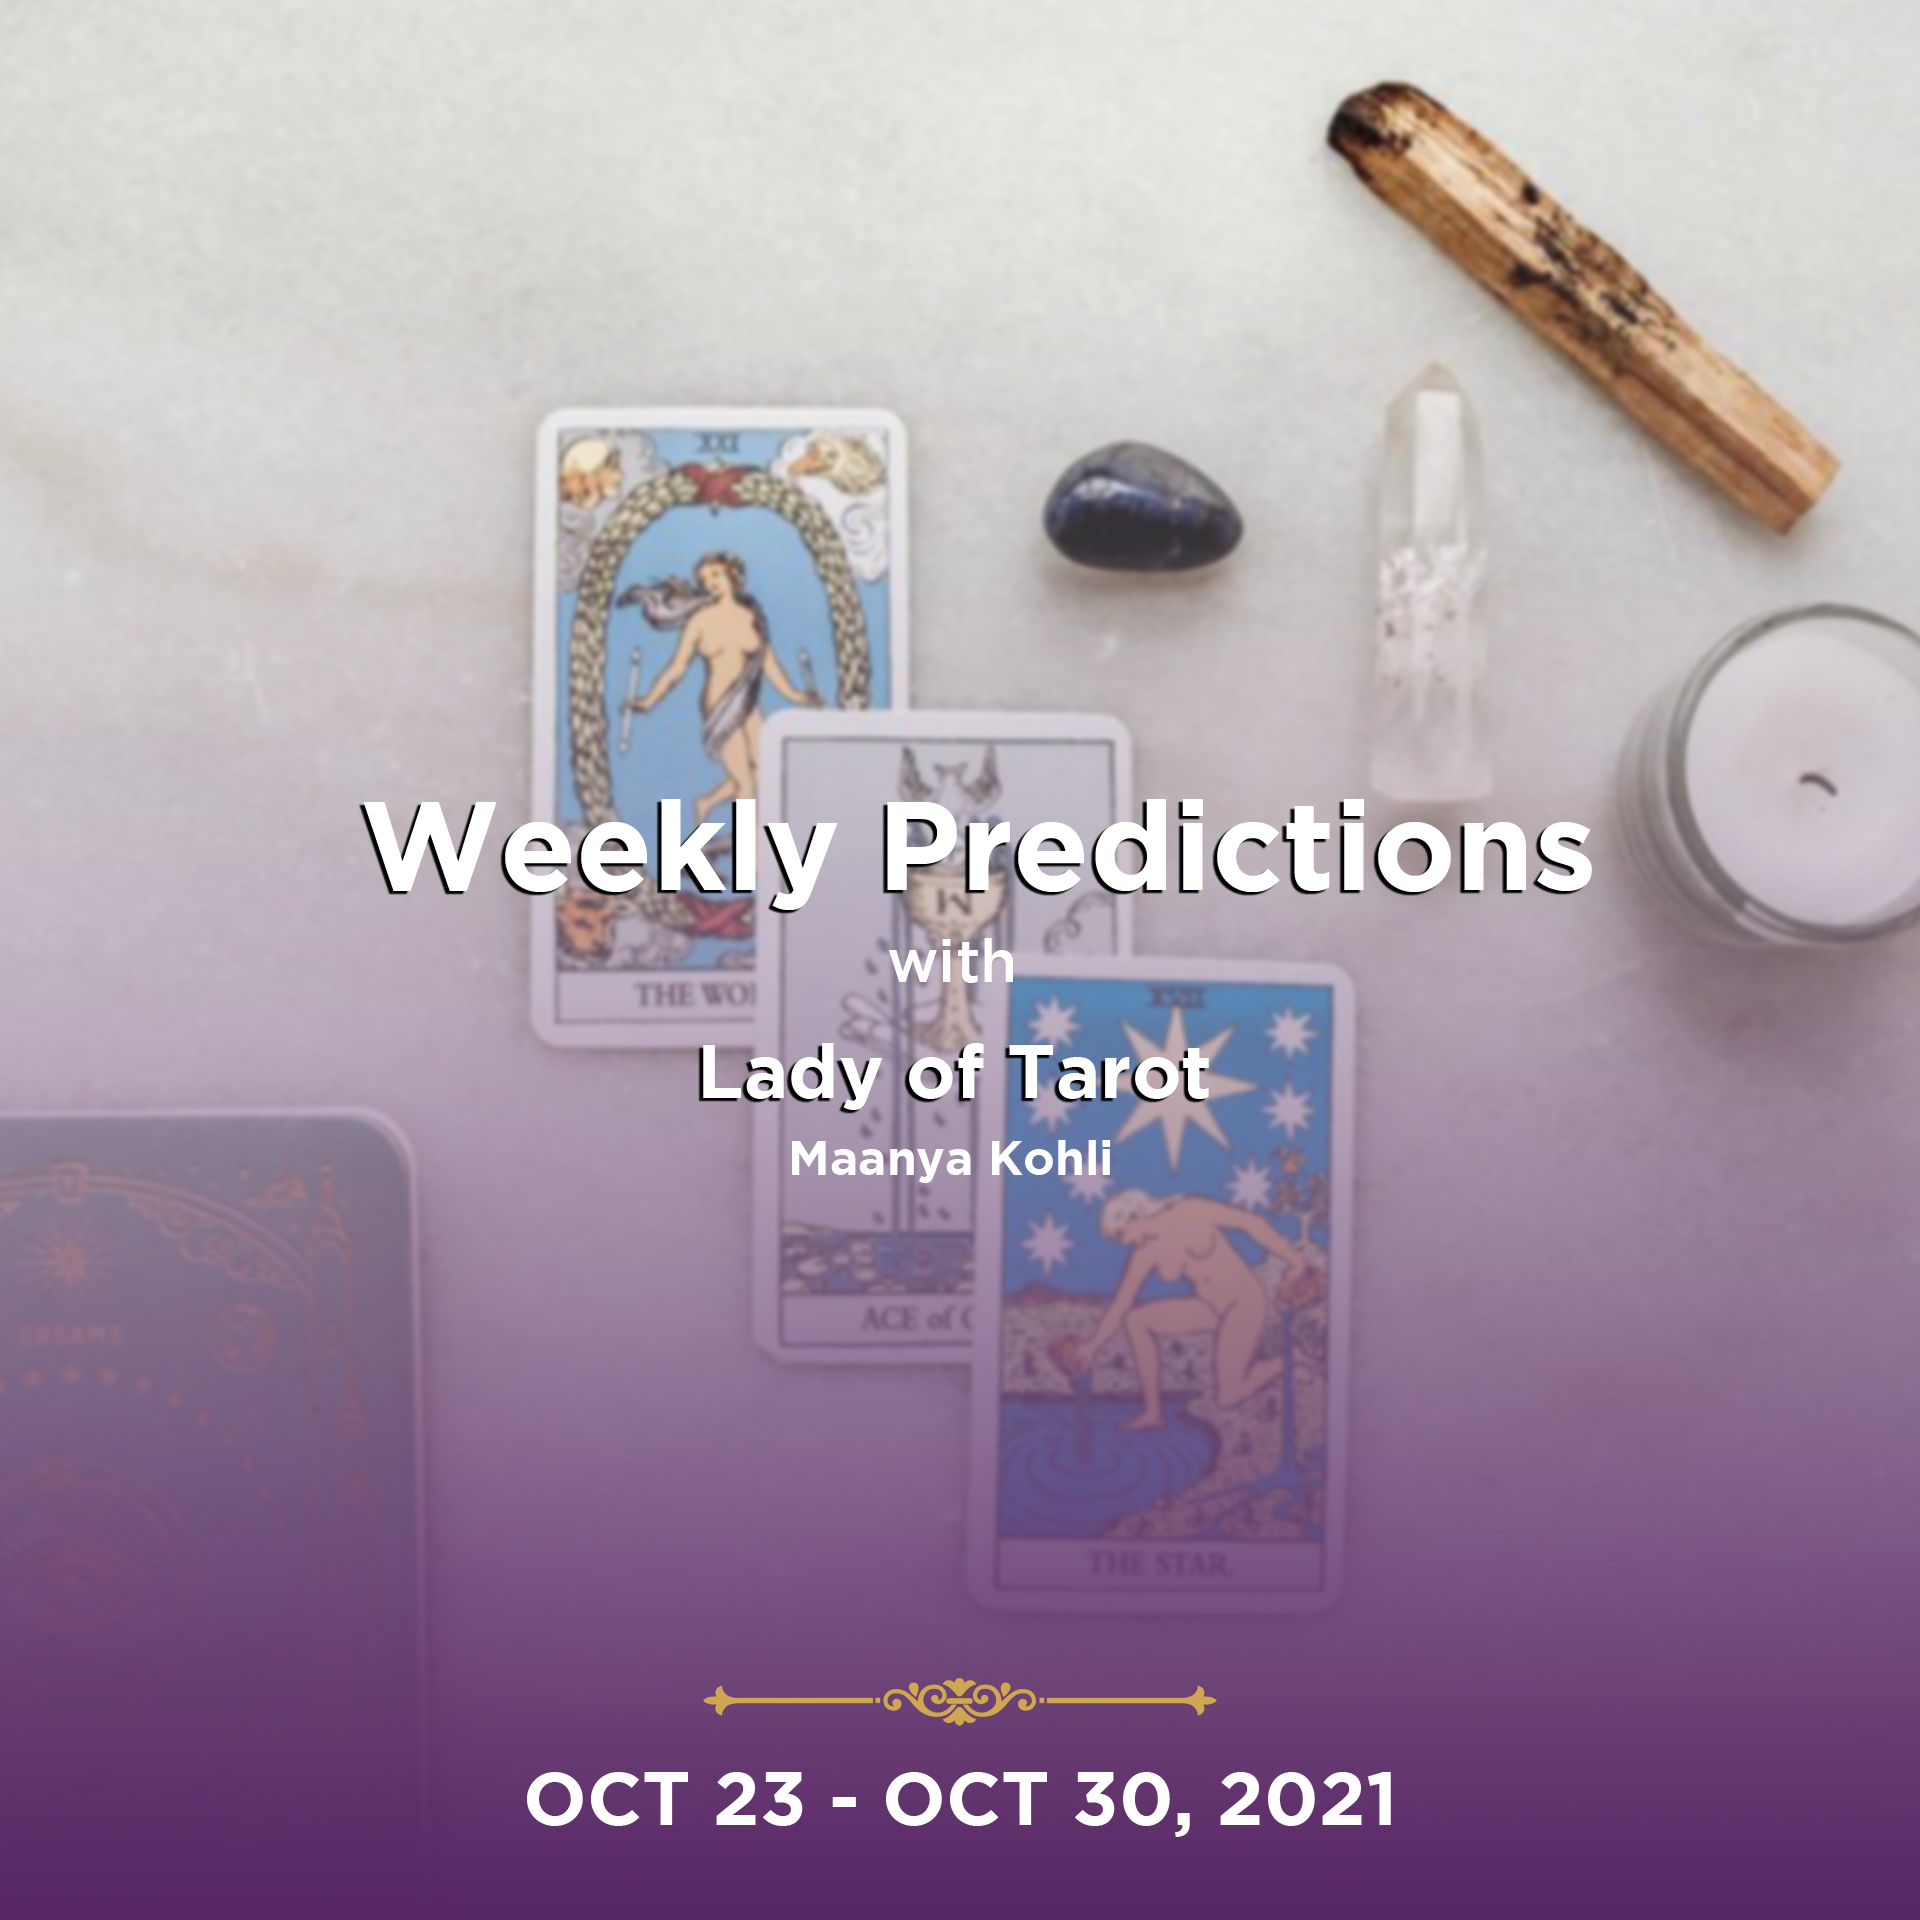 Weekly Predictions from 23rd October 2021 to 30th October 2021